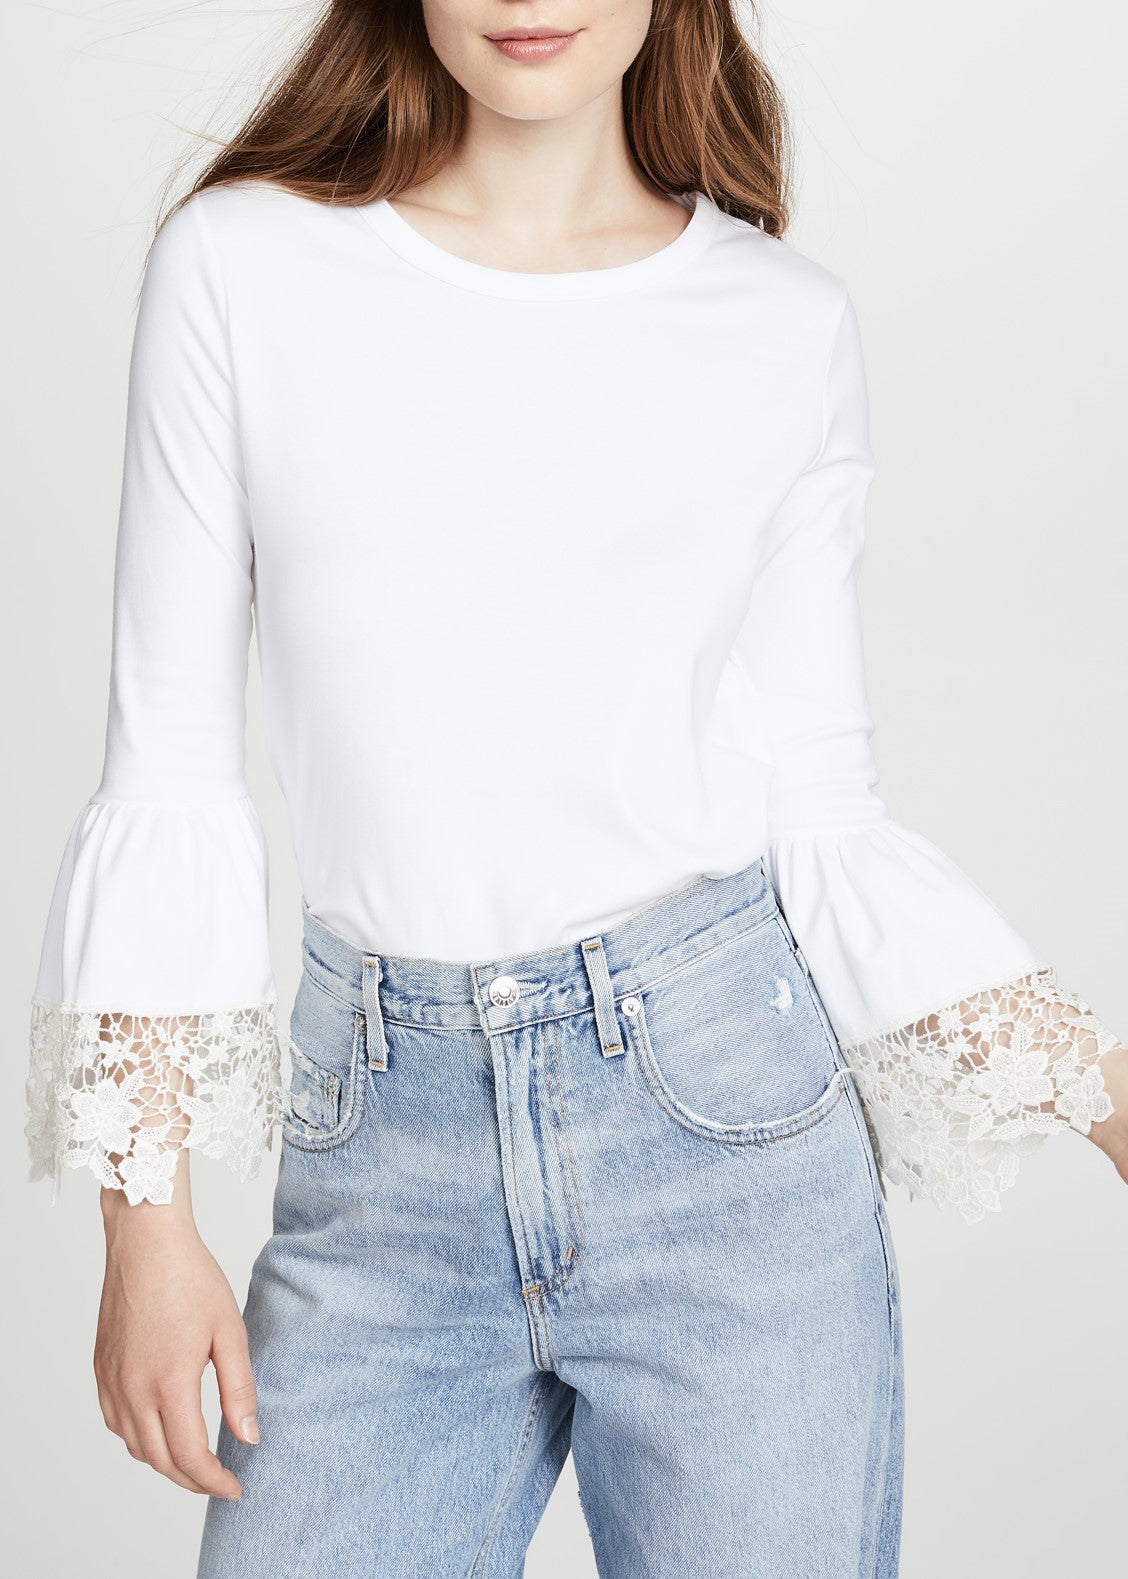 See by Chloe white powder top